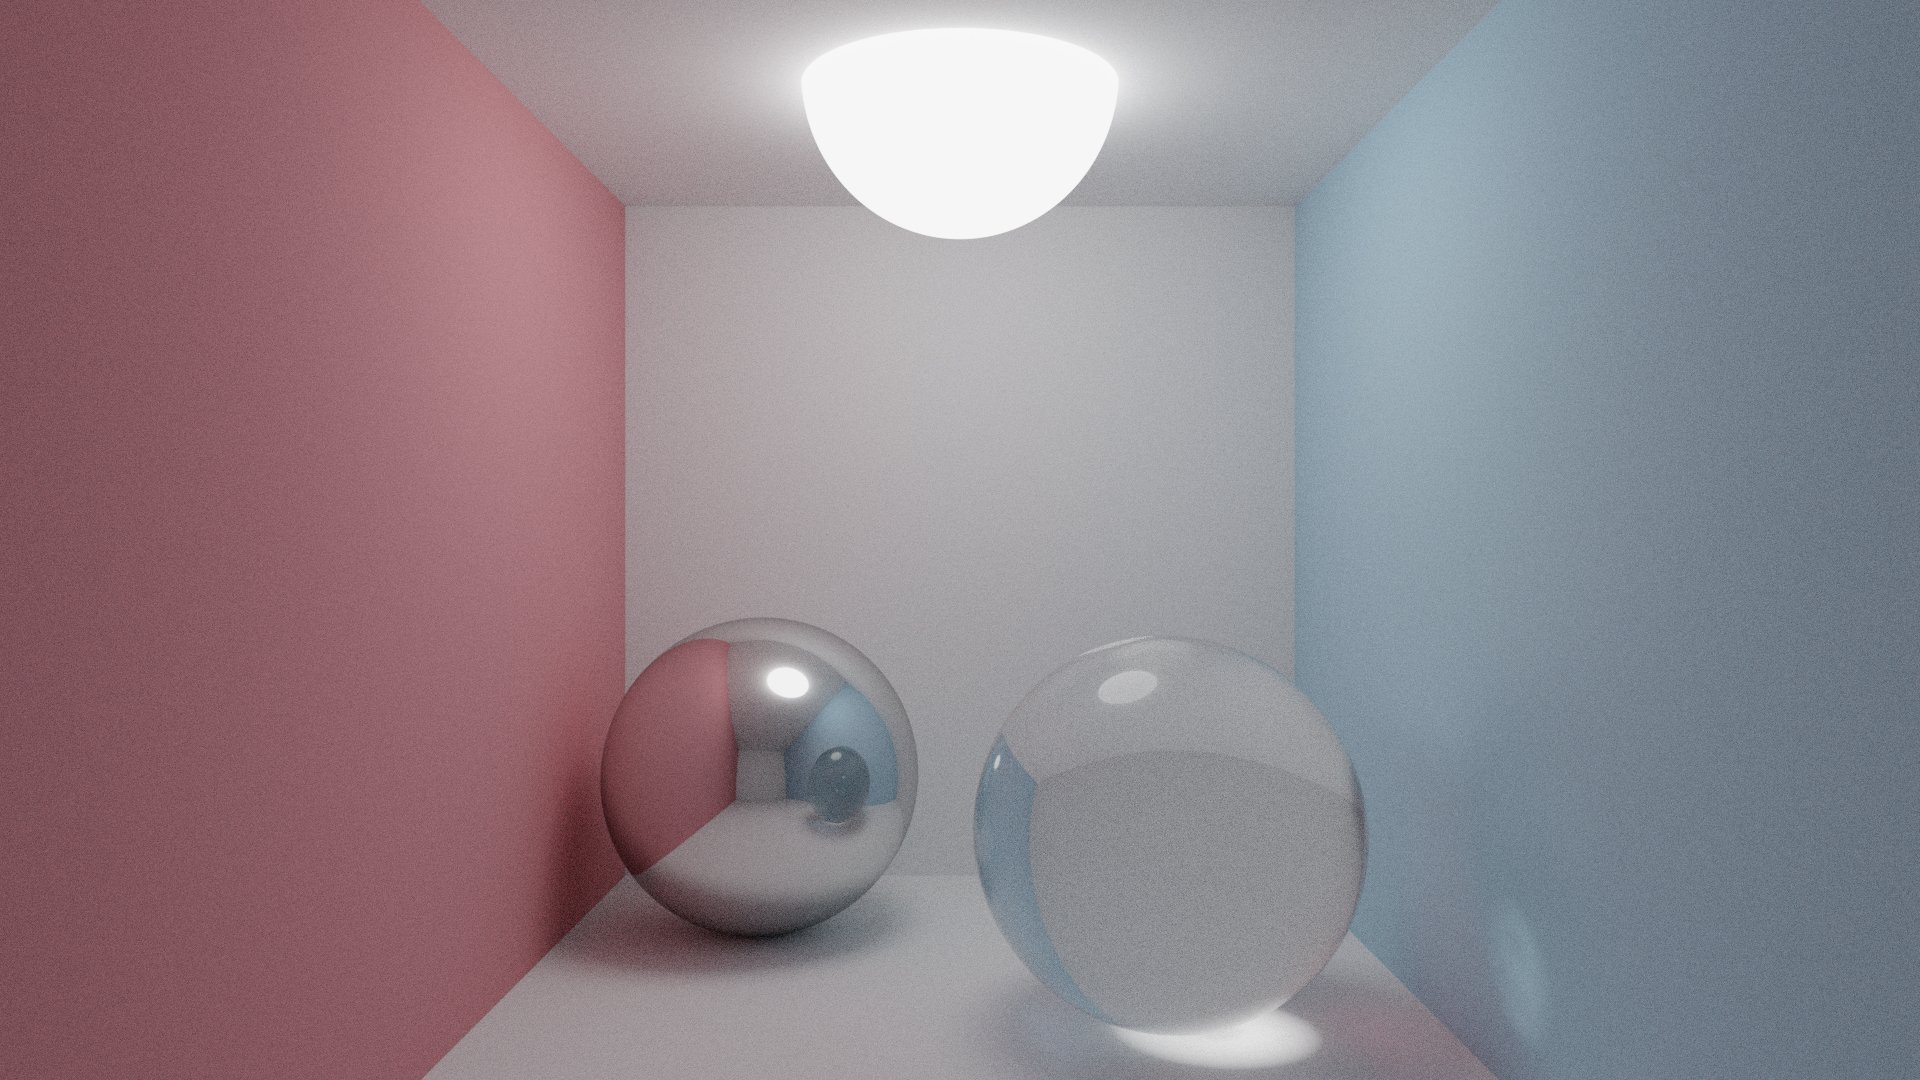 Rendering made with LuxCore Render with Oath Tracer